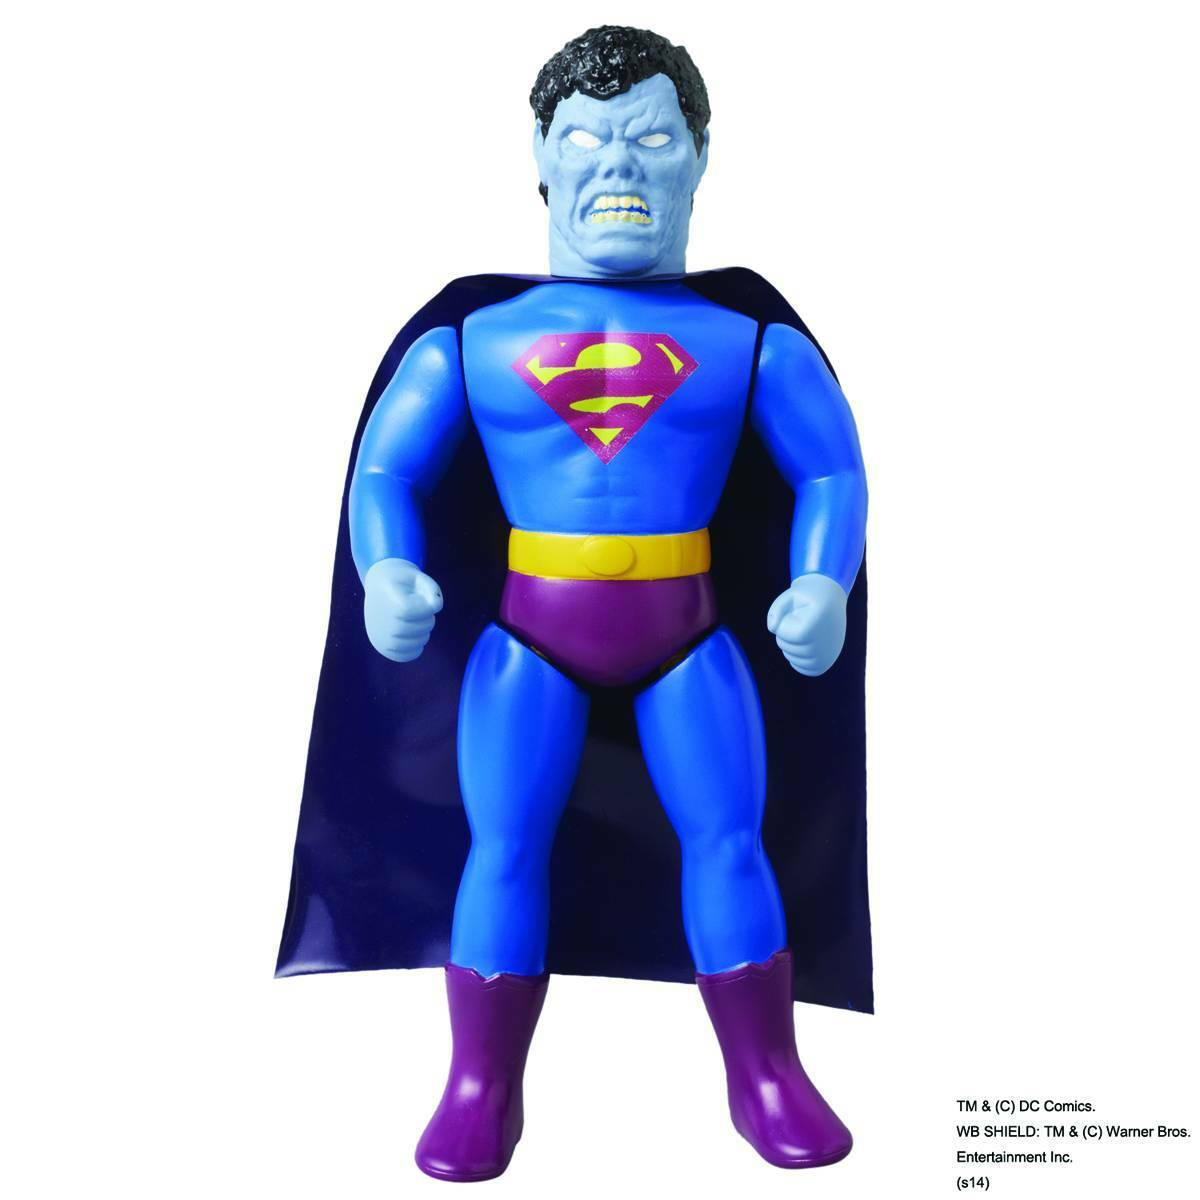 "Medicom DC Comics Originals Retro Sofubi Collection 10"" Soft Vinyl Bizarro Action Figure #4530956464855"